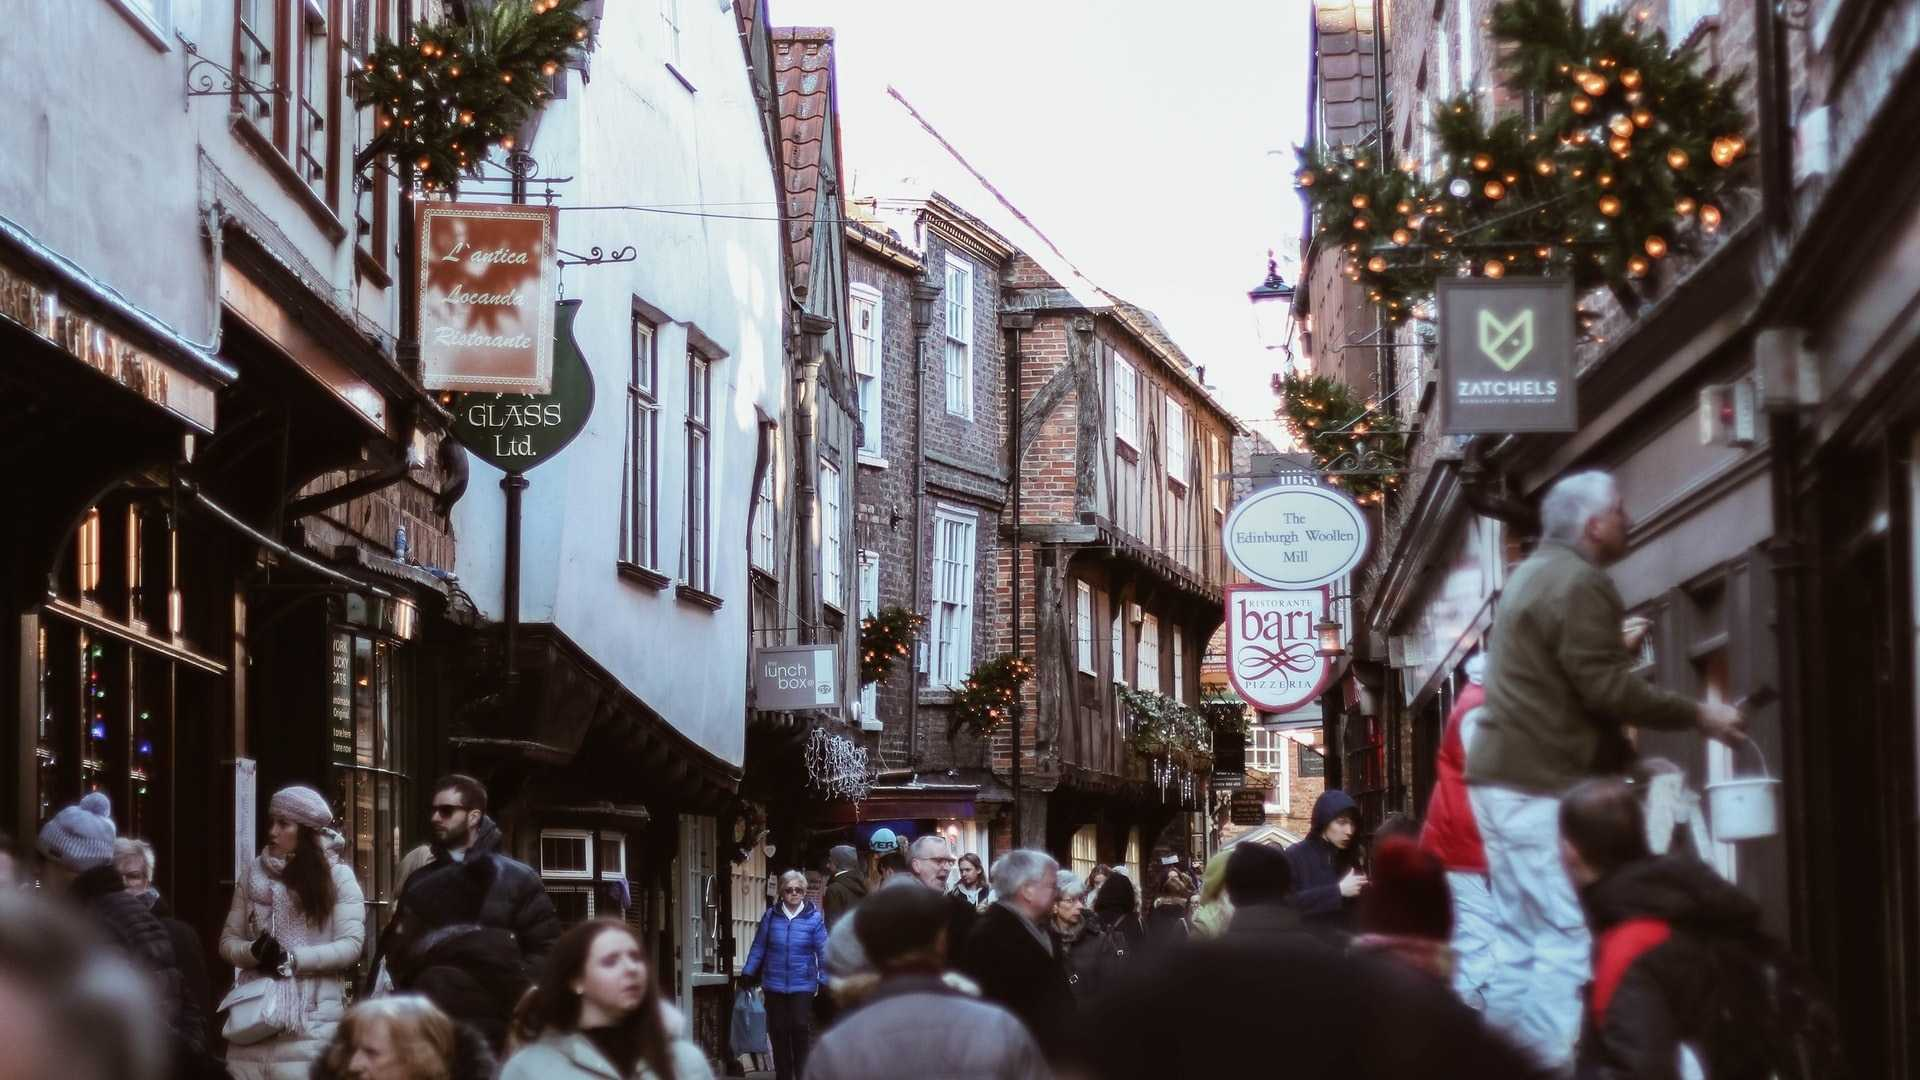 A crowd of people walking through york high street.